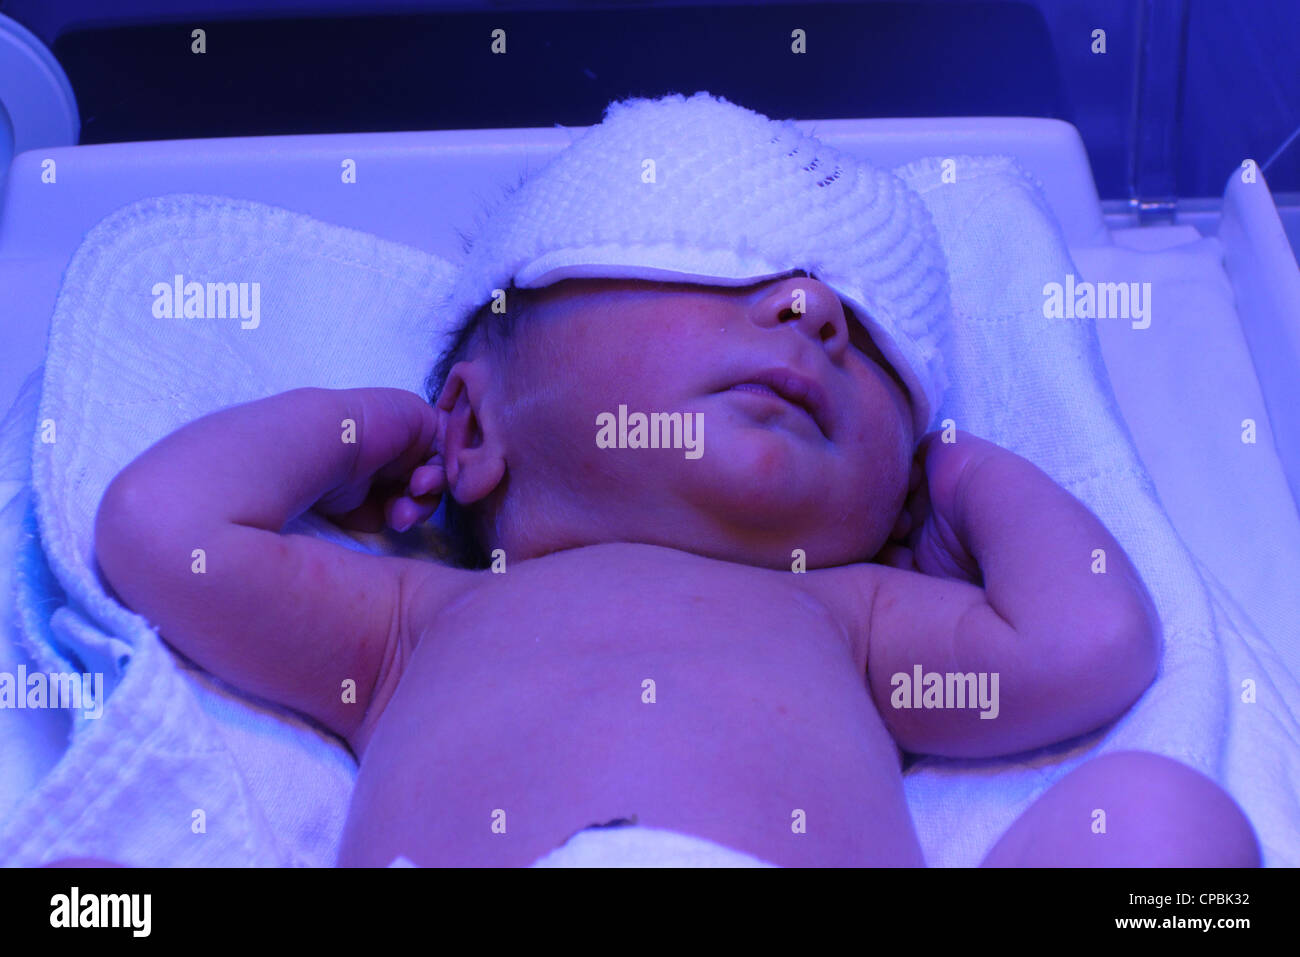 A one day old baby having photo therapy for jaundice - Stock Image